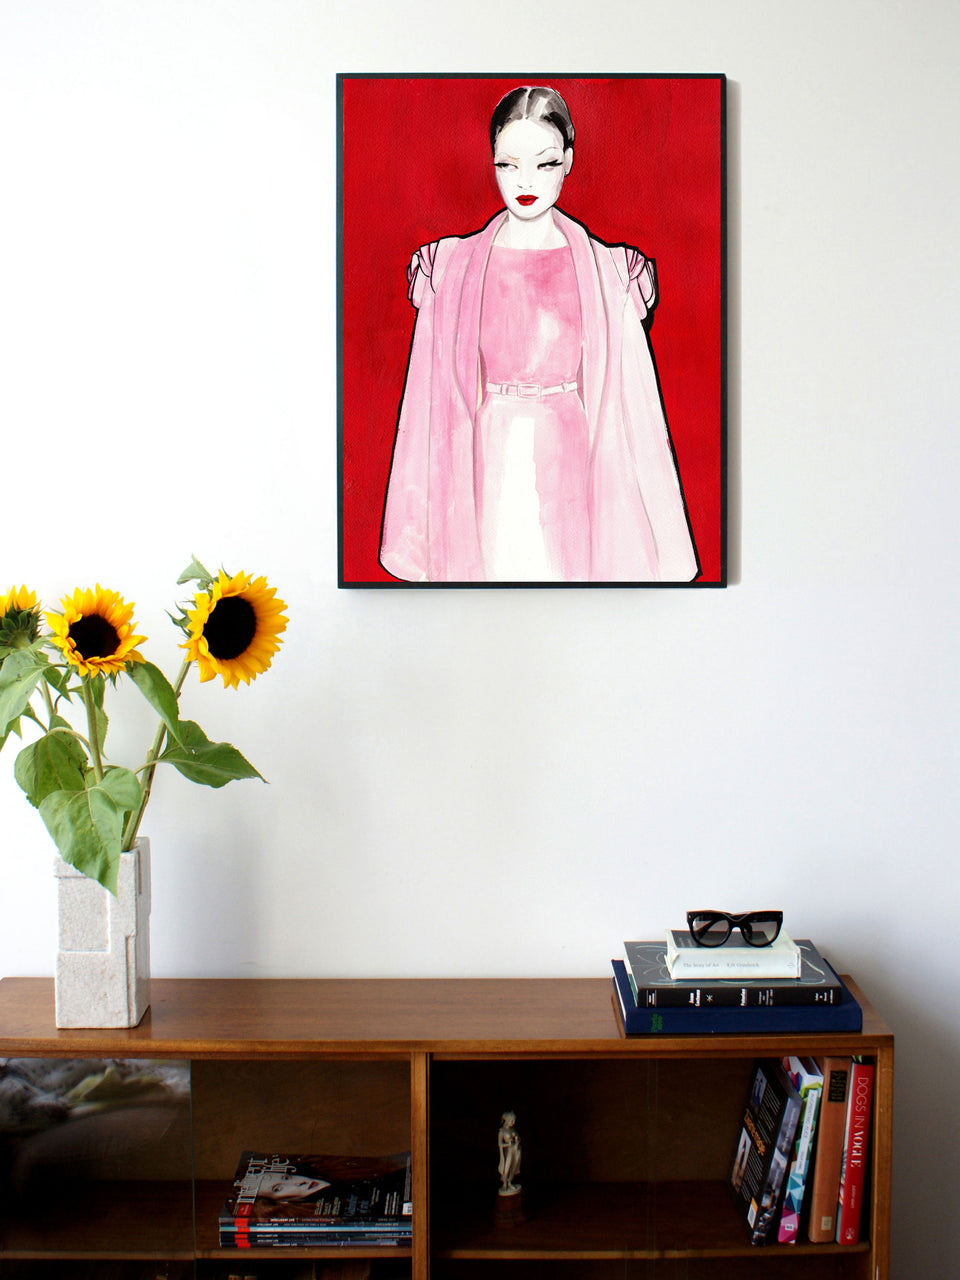 Fashion illustration print of Pink by Sjoukje Bierma - woman in dress and cape - 60 x 80 cm framed